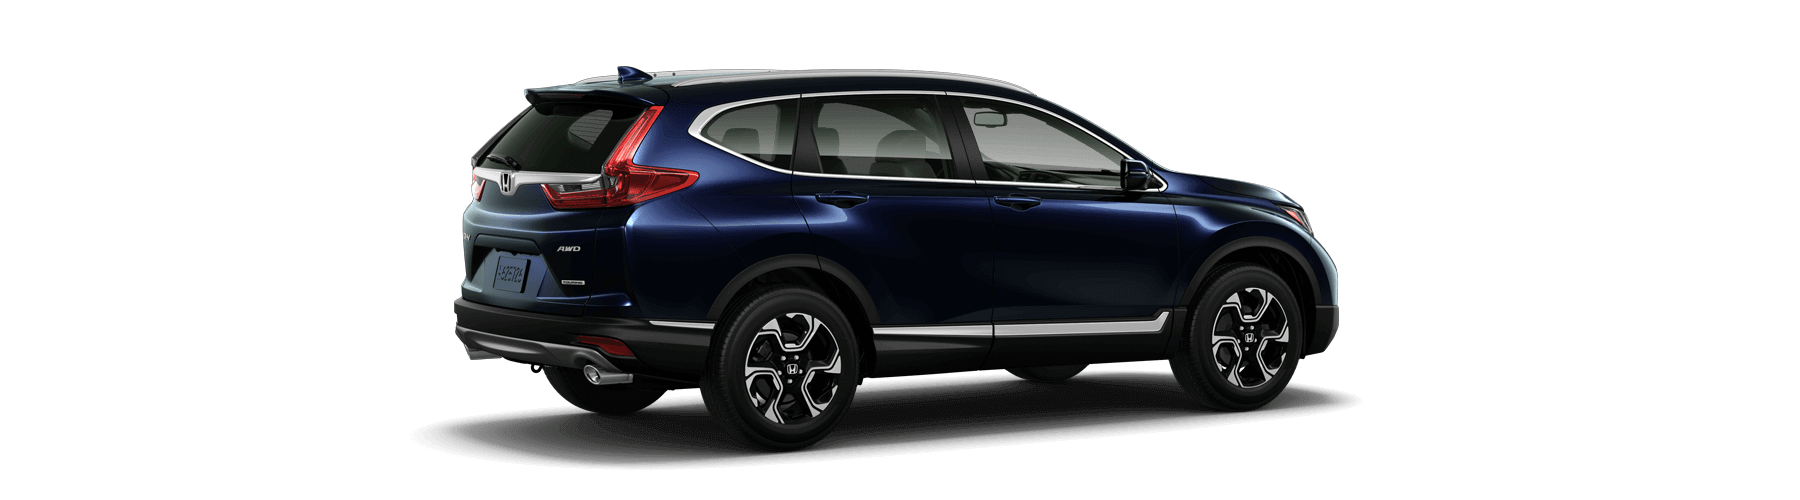 2017 Honda CR-V Rear Angle